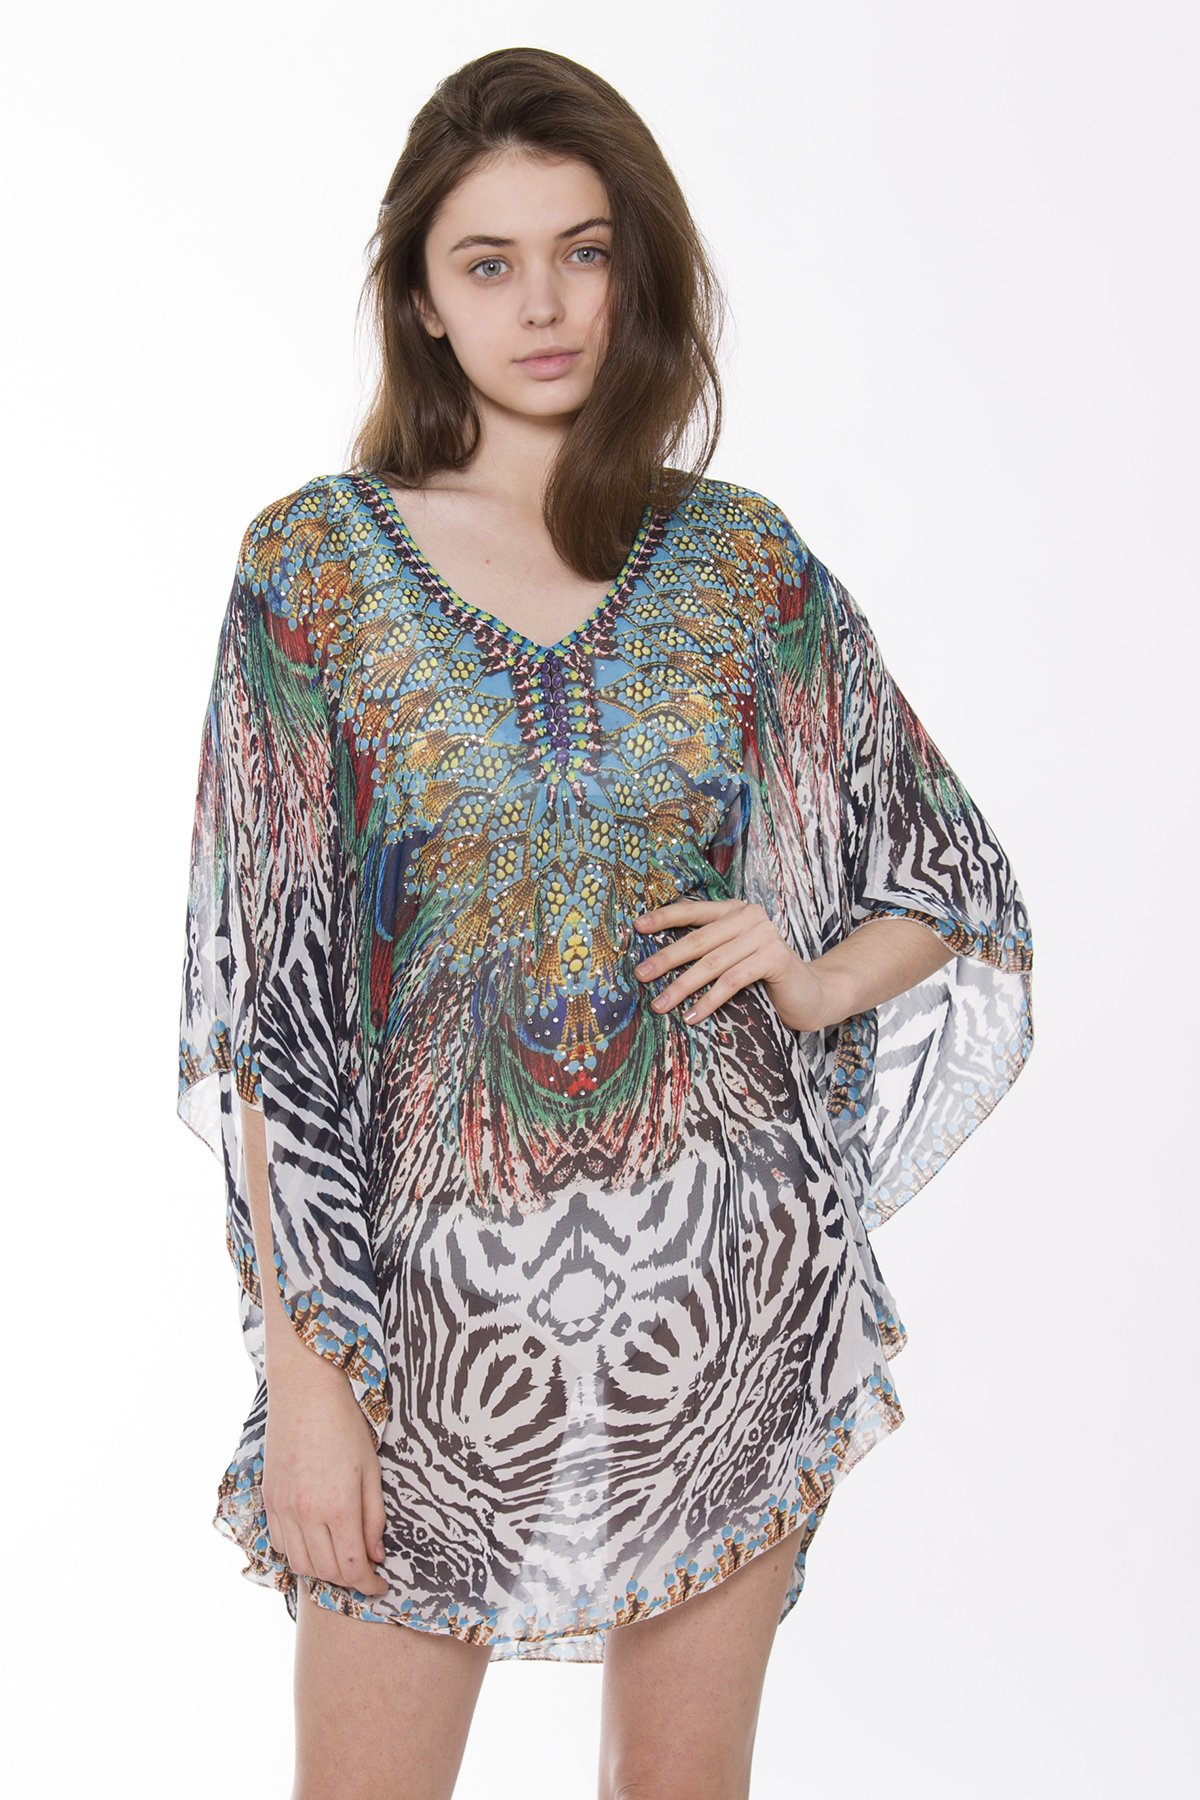 BYOS Womens Fashion Diva Soft Sheer Rhinestone Studded Poncho Tunic Beach Coverup Bold Color Animal Floral Print (Multi Peacock Tiger Print) by Be Your Own Style